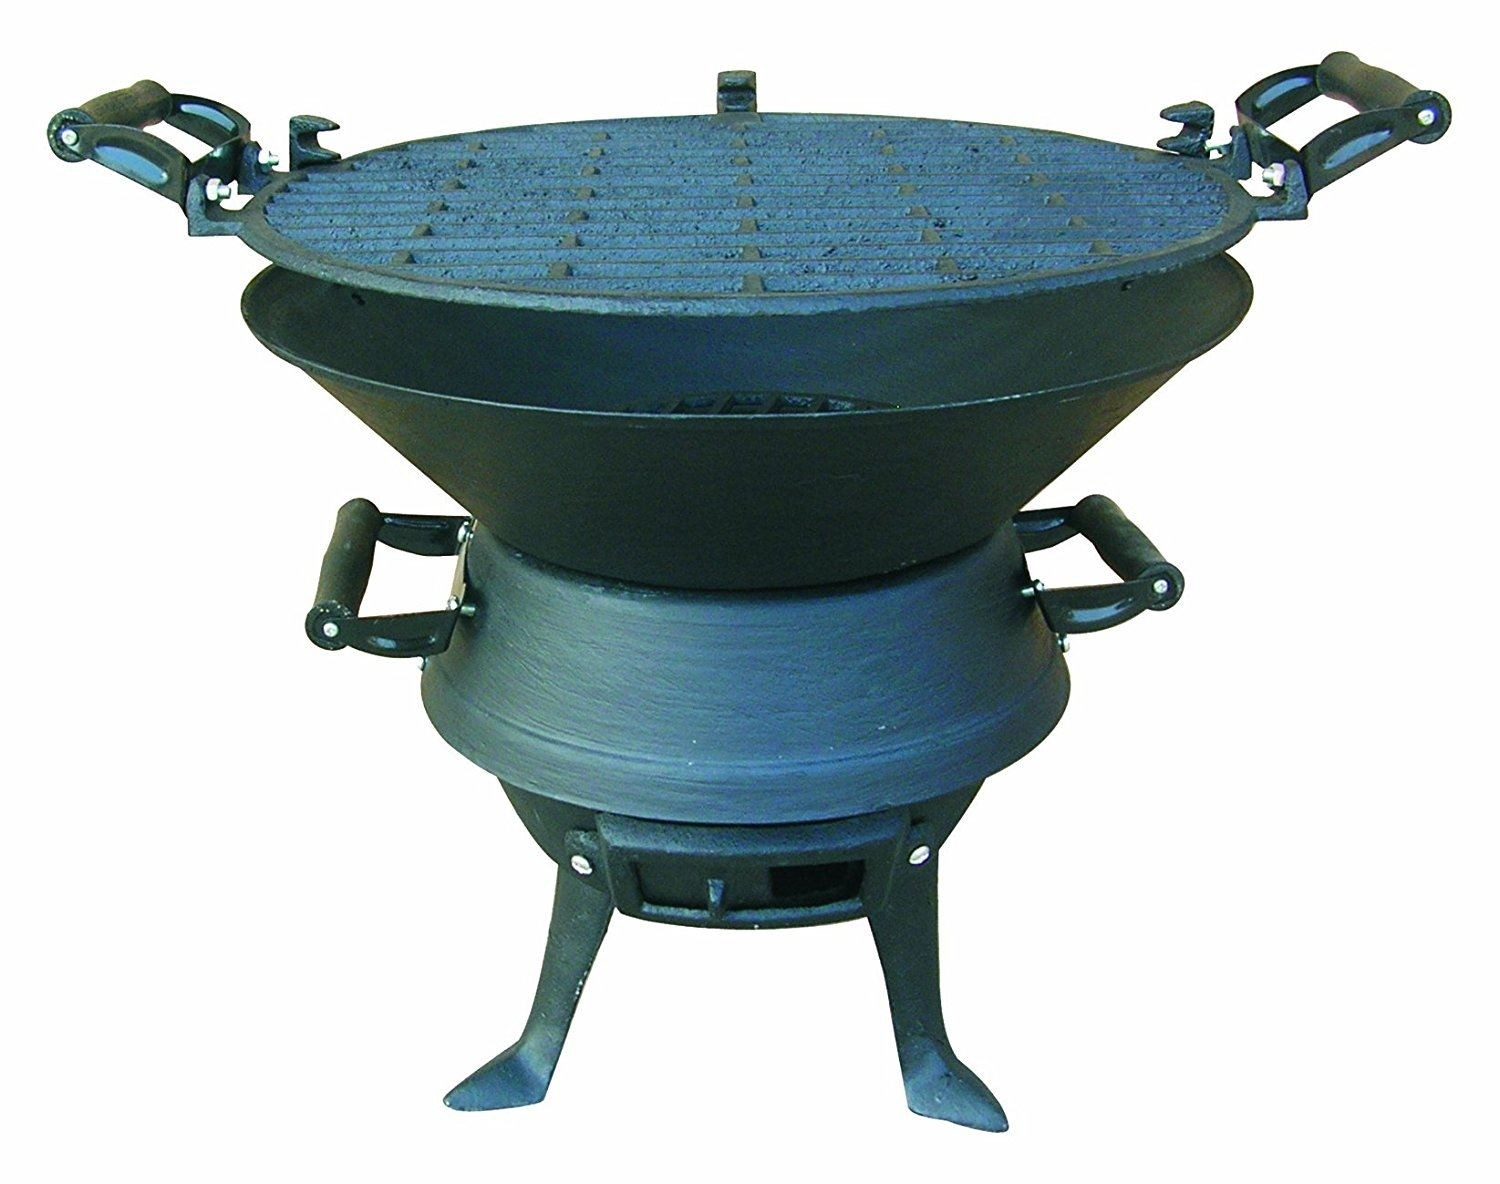 Cast Iron Barrel Charcoal Bbq With Adjustable Grill Garden Camping Barbeque